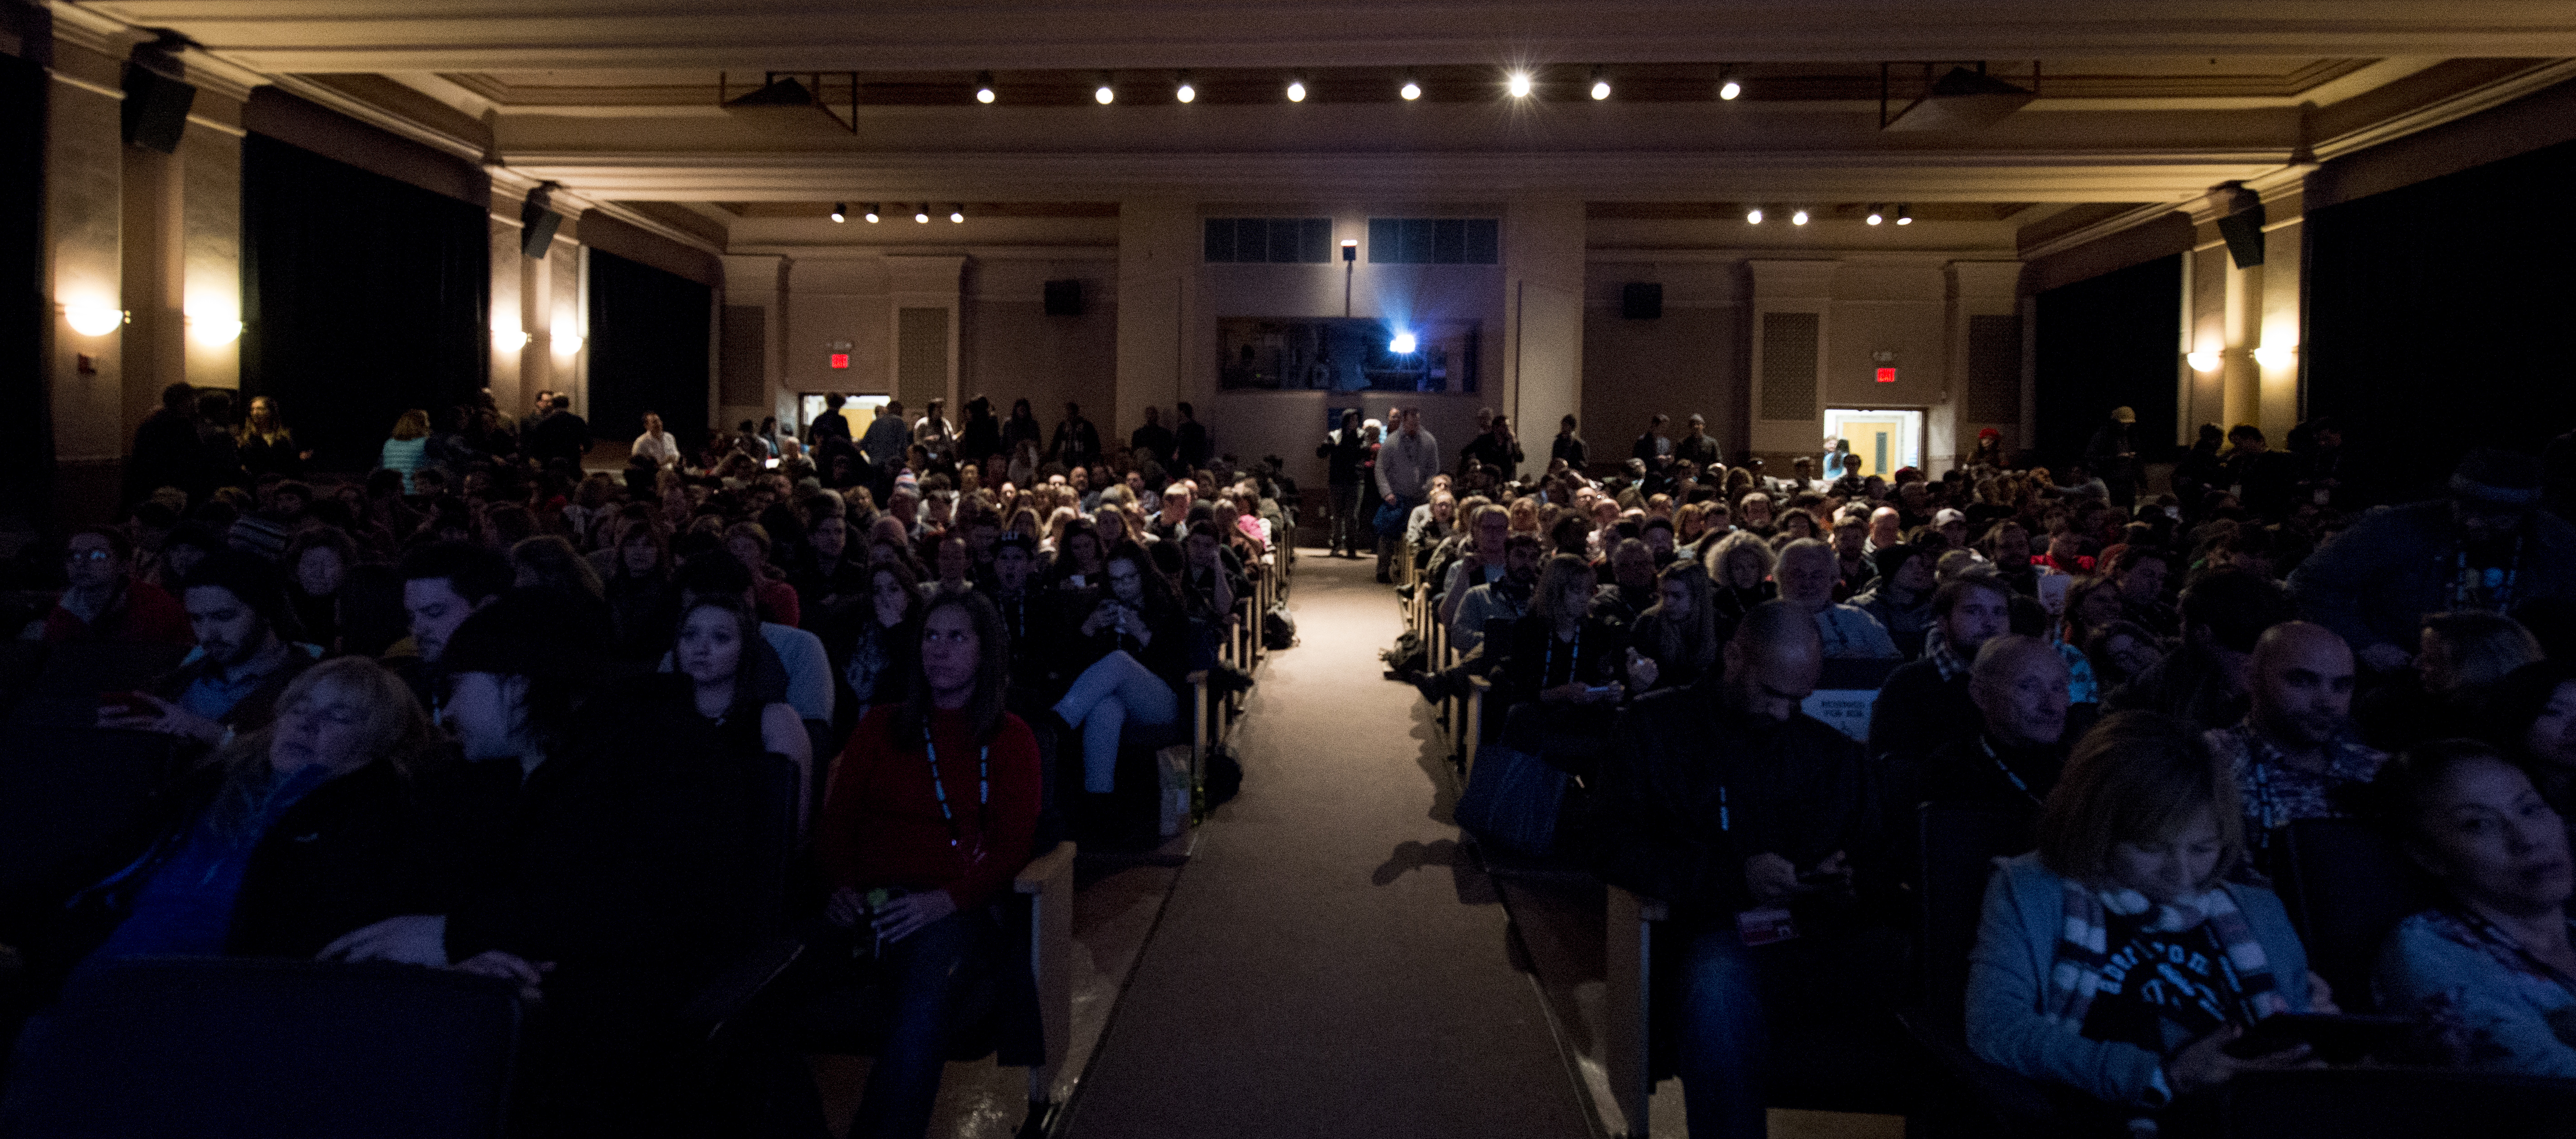 Sundance Film Festival. Watch videos live from the event.